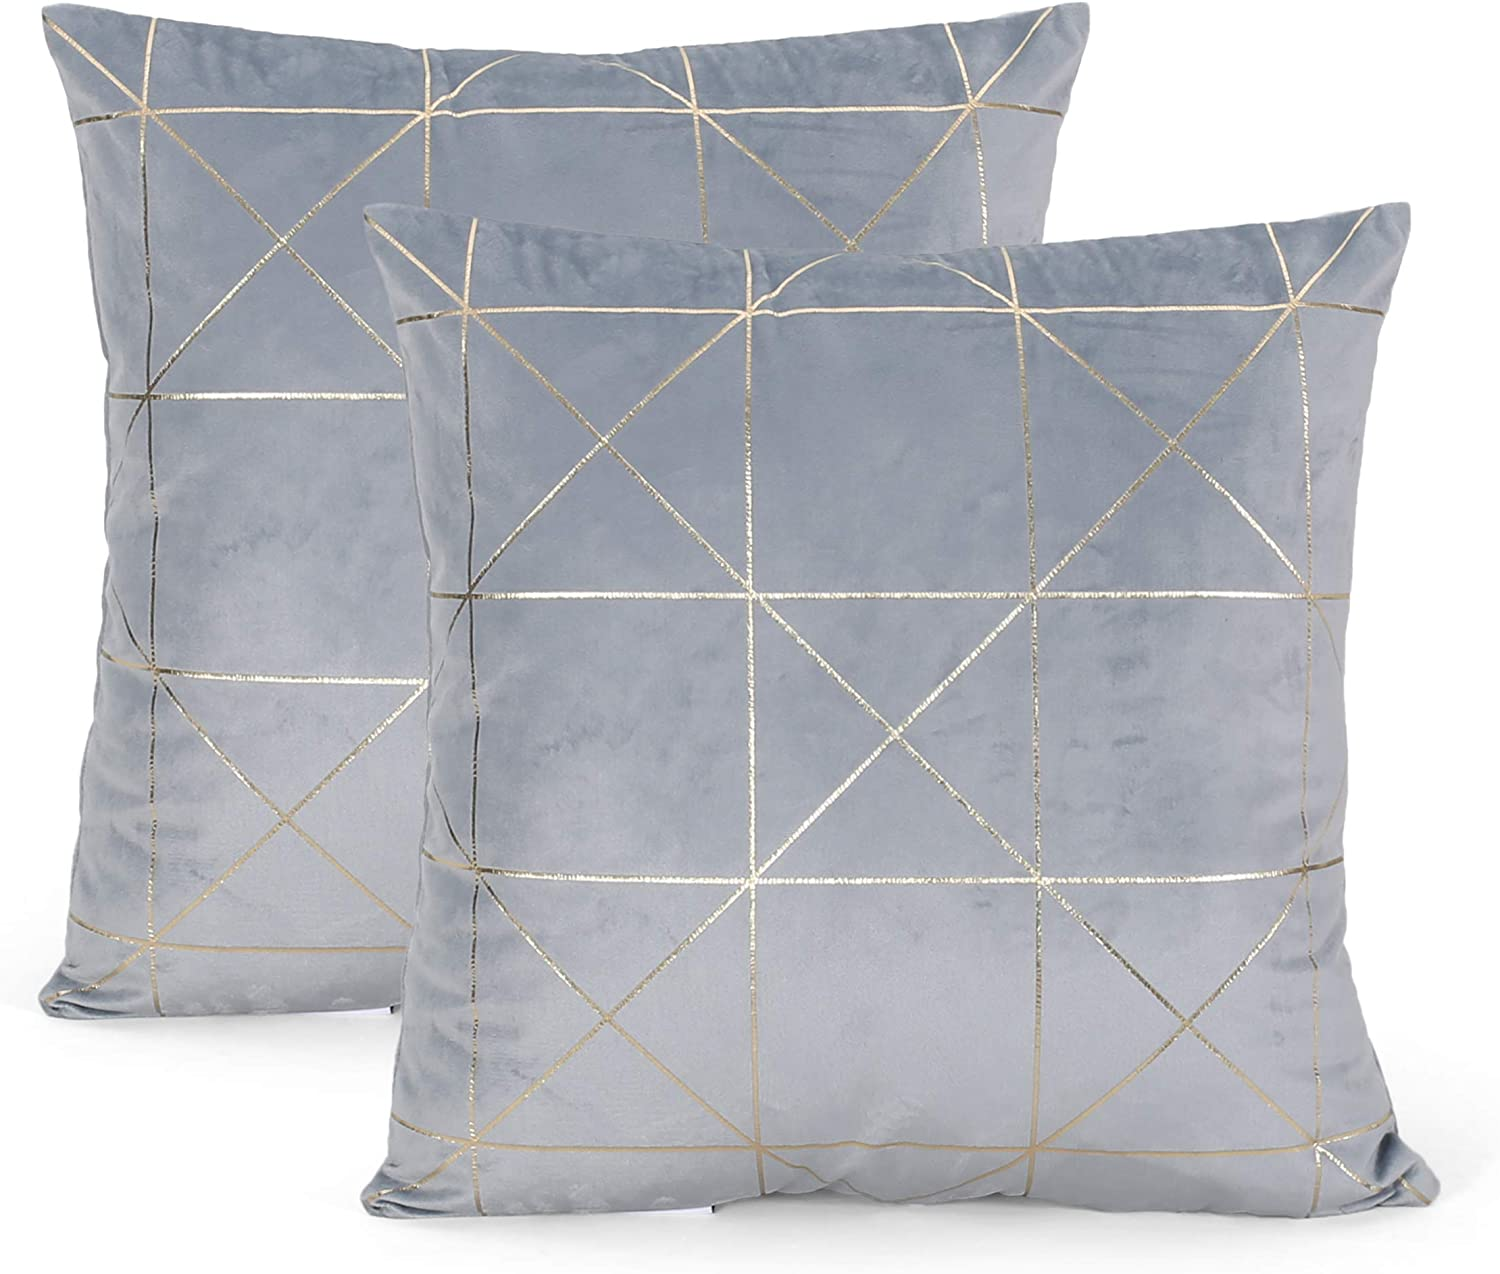 Christopher Knight Home Modern Square Fabric Throw Pillow (Set of 2), Light Gray